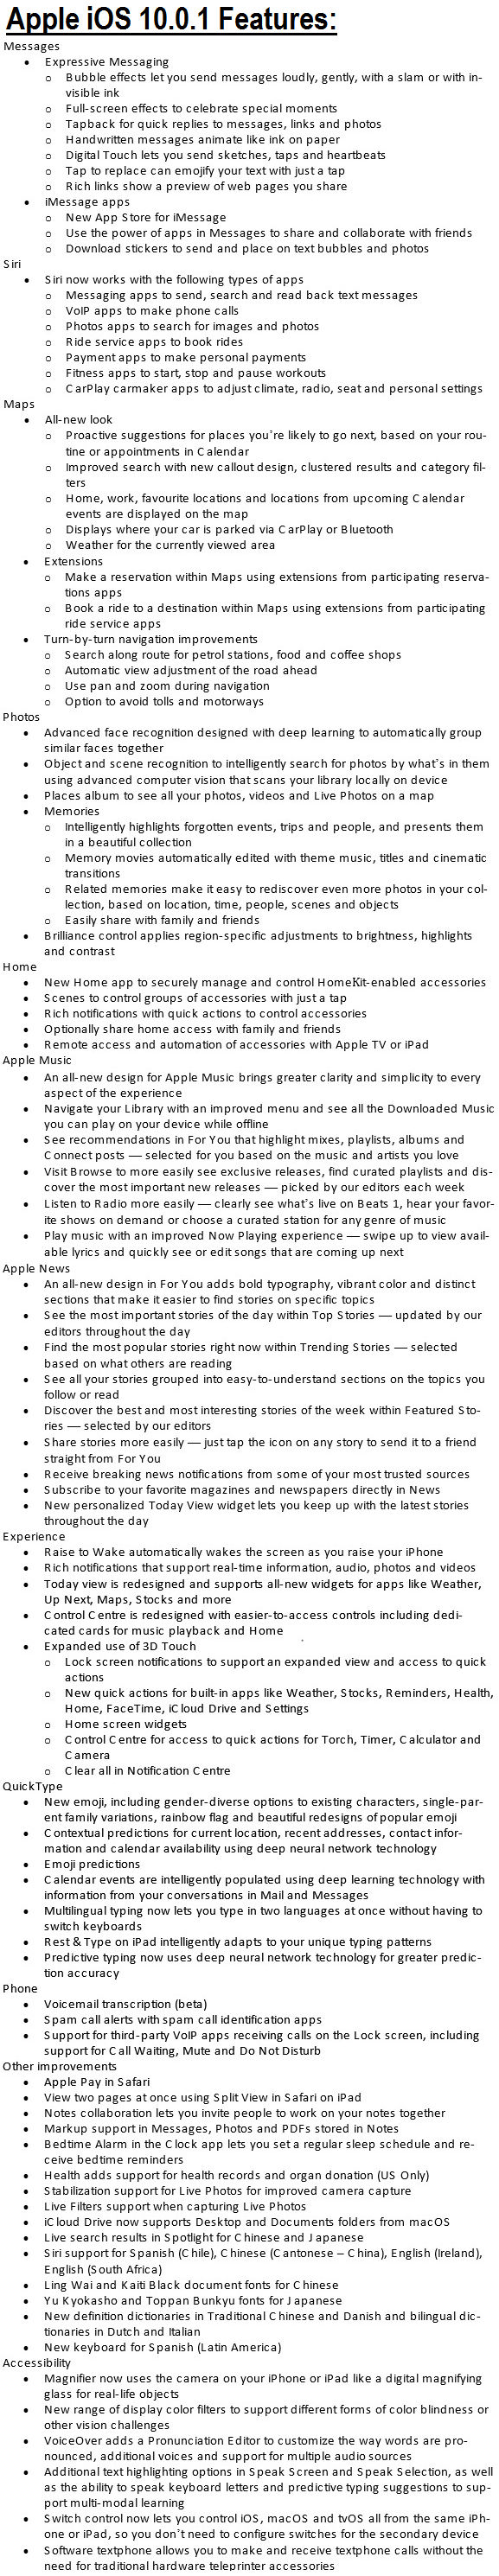 Apple iOS 10.0.1 Features